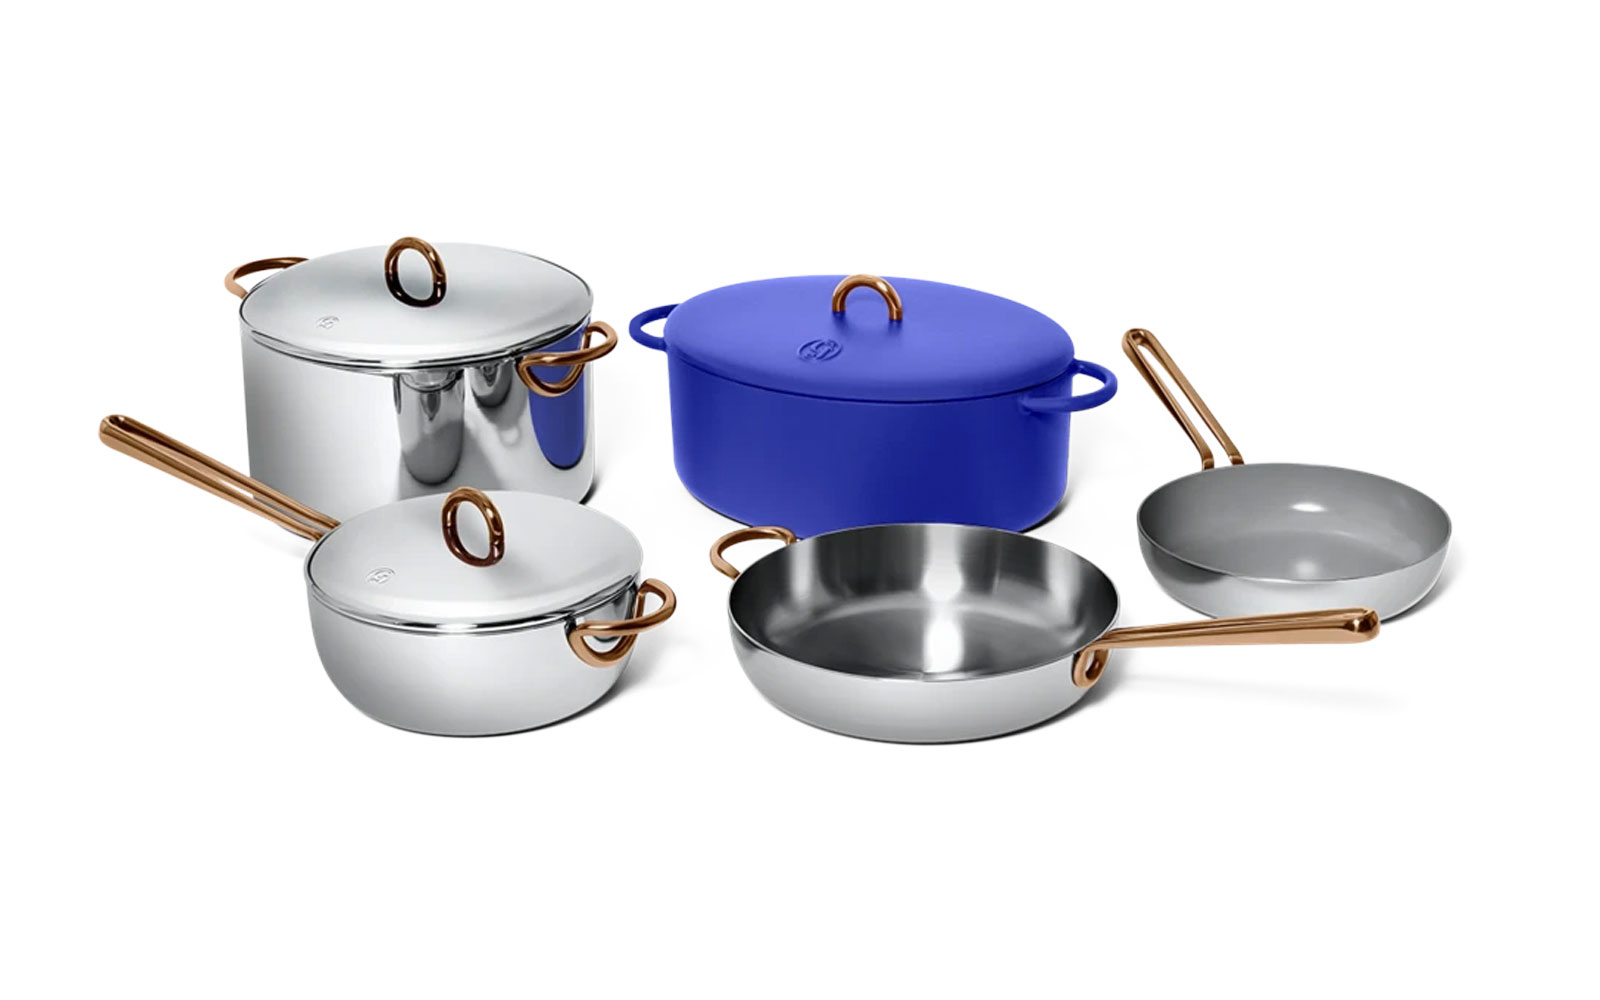 Stainless steel and blue cookware set